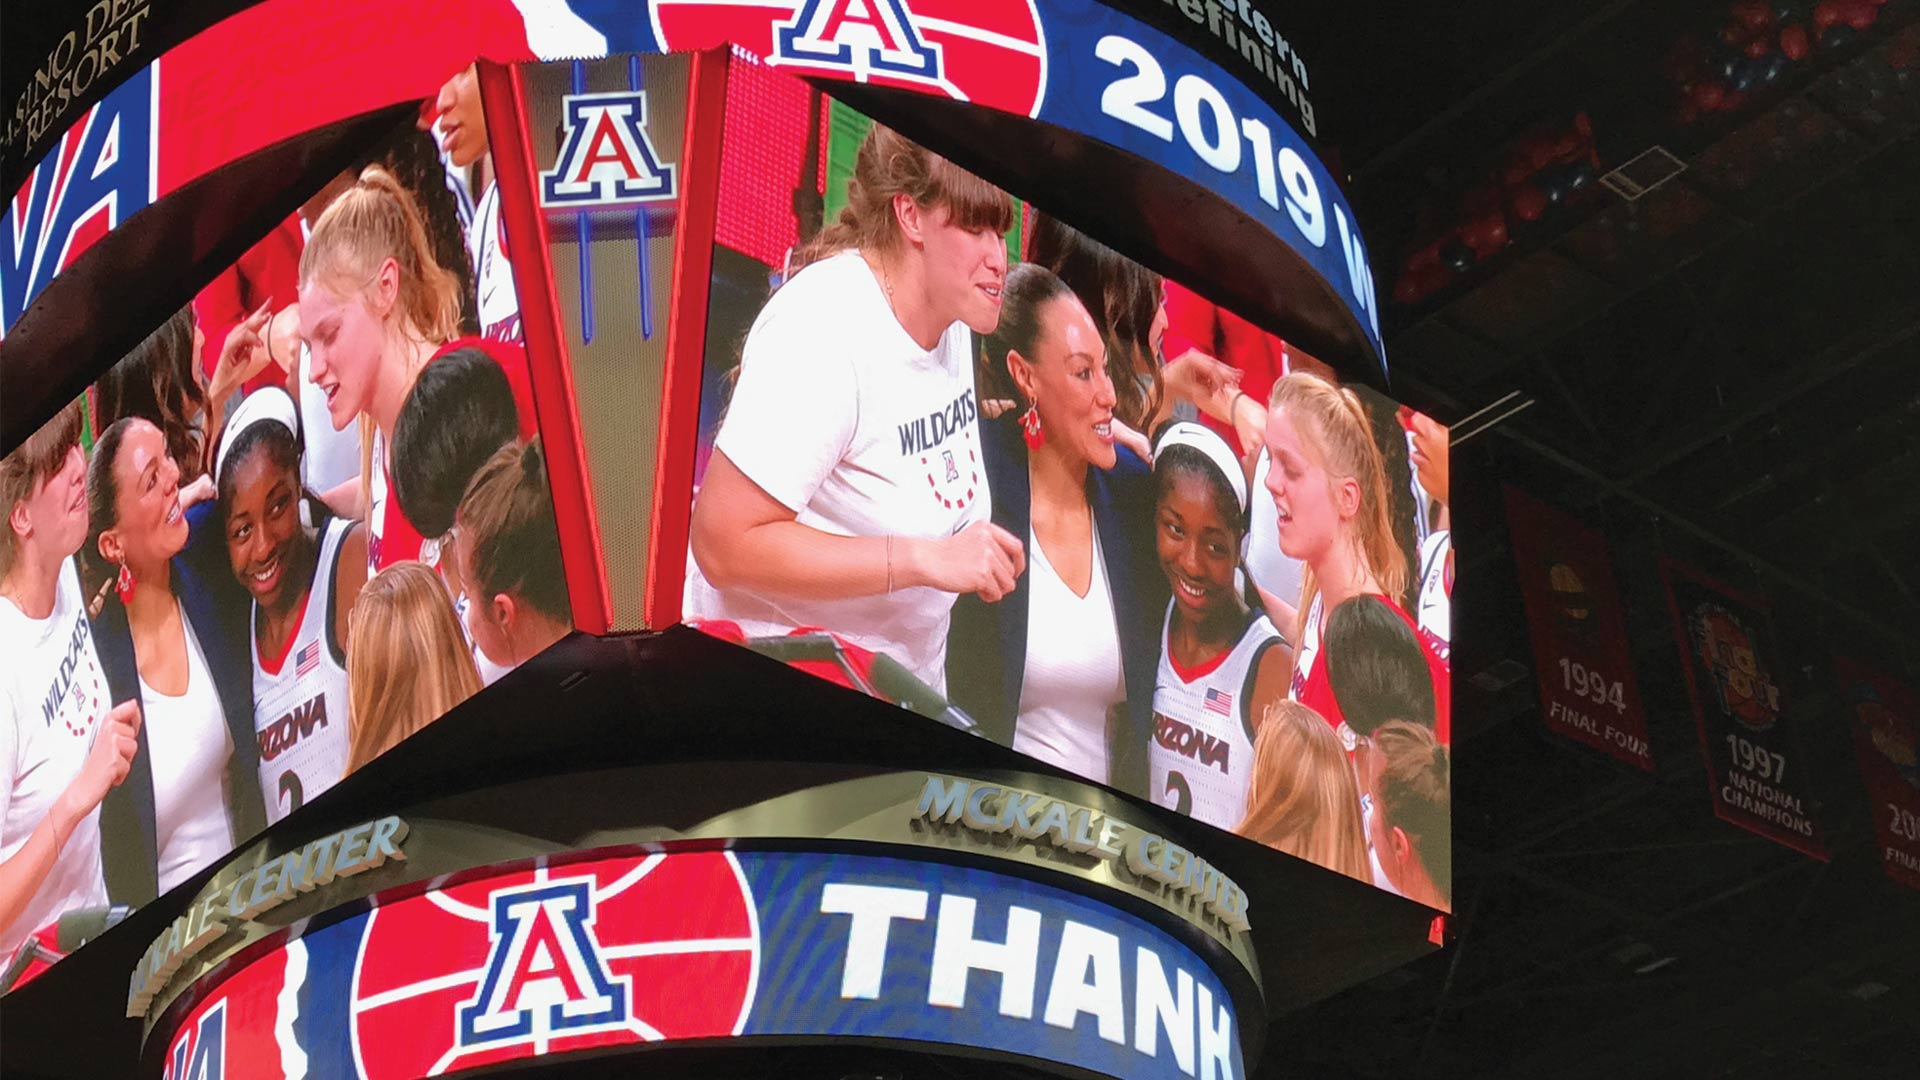 UA Women's basketball coach Adia Barnes celebrates with her team after winning the Women's National Invitation Tournament championship at McKale Center in Tucson, April 6, 2019.